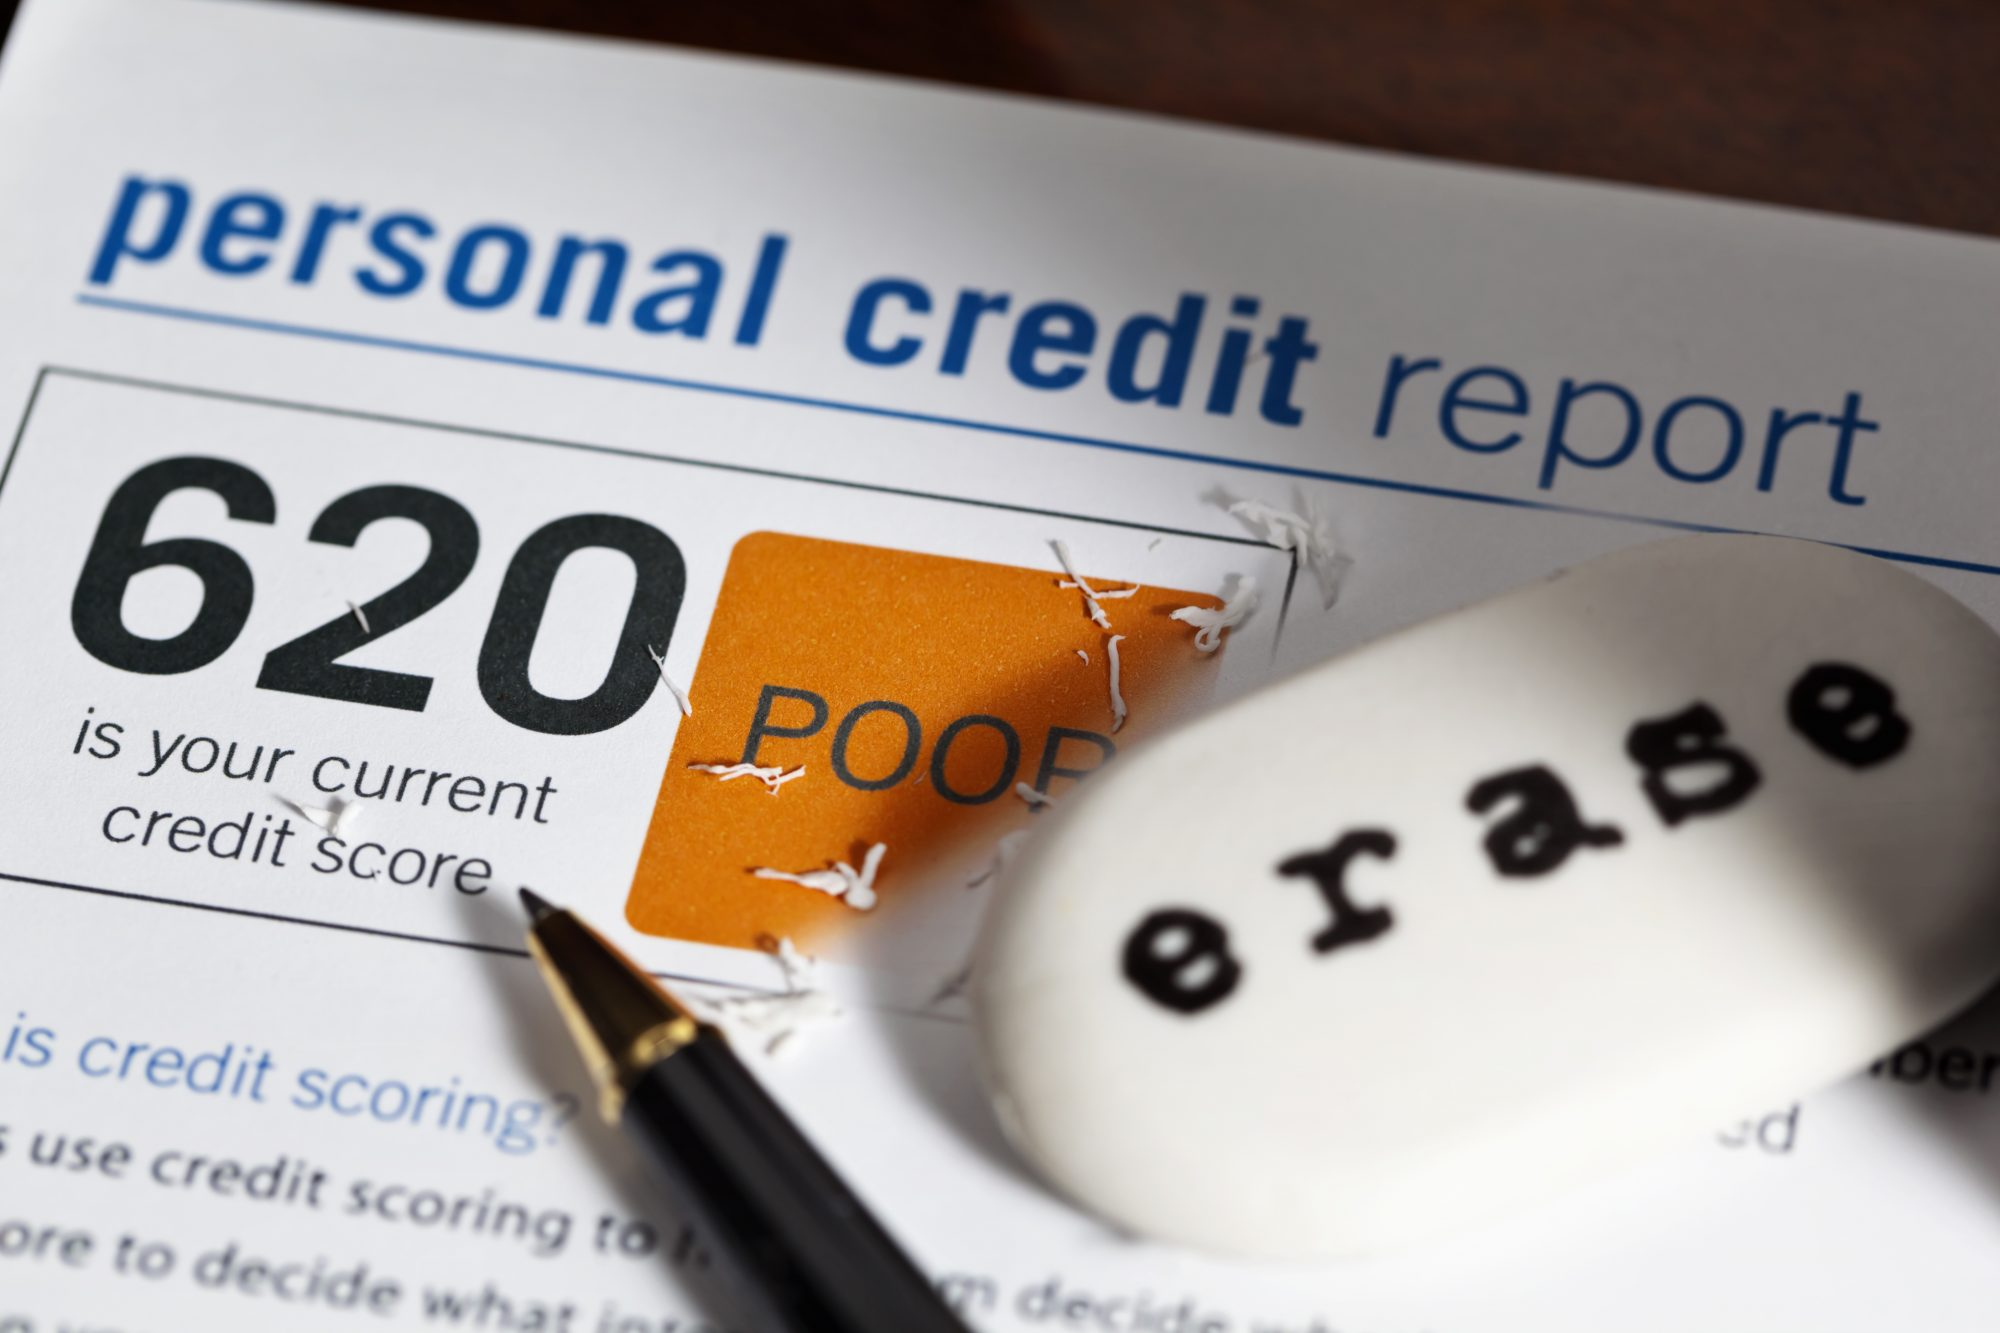 picture of personal credit report with score of 620